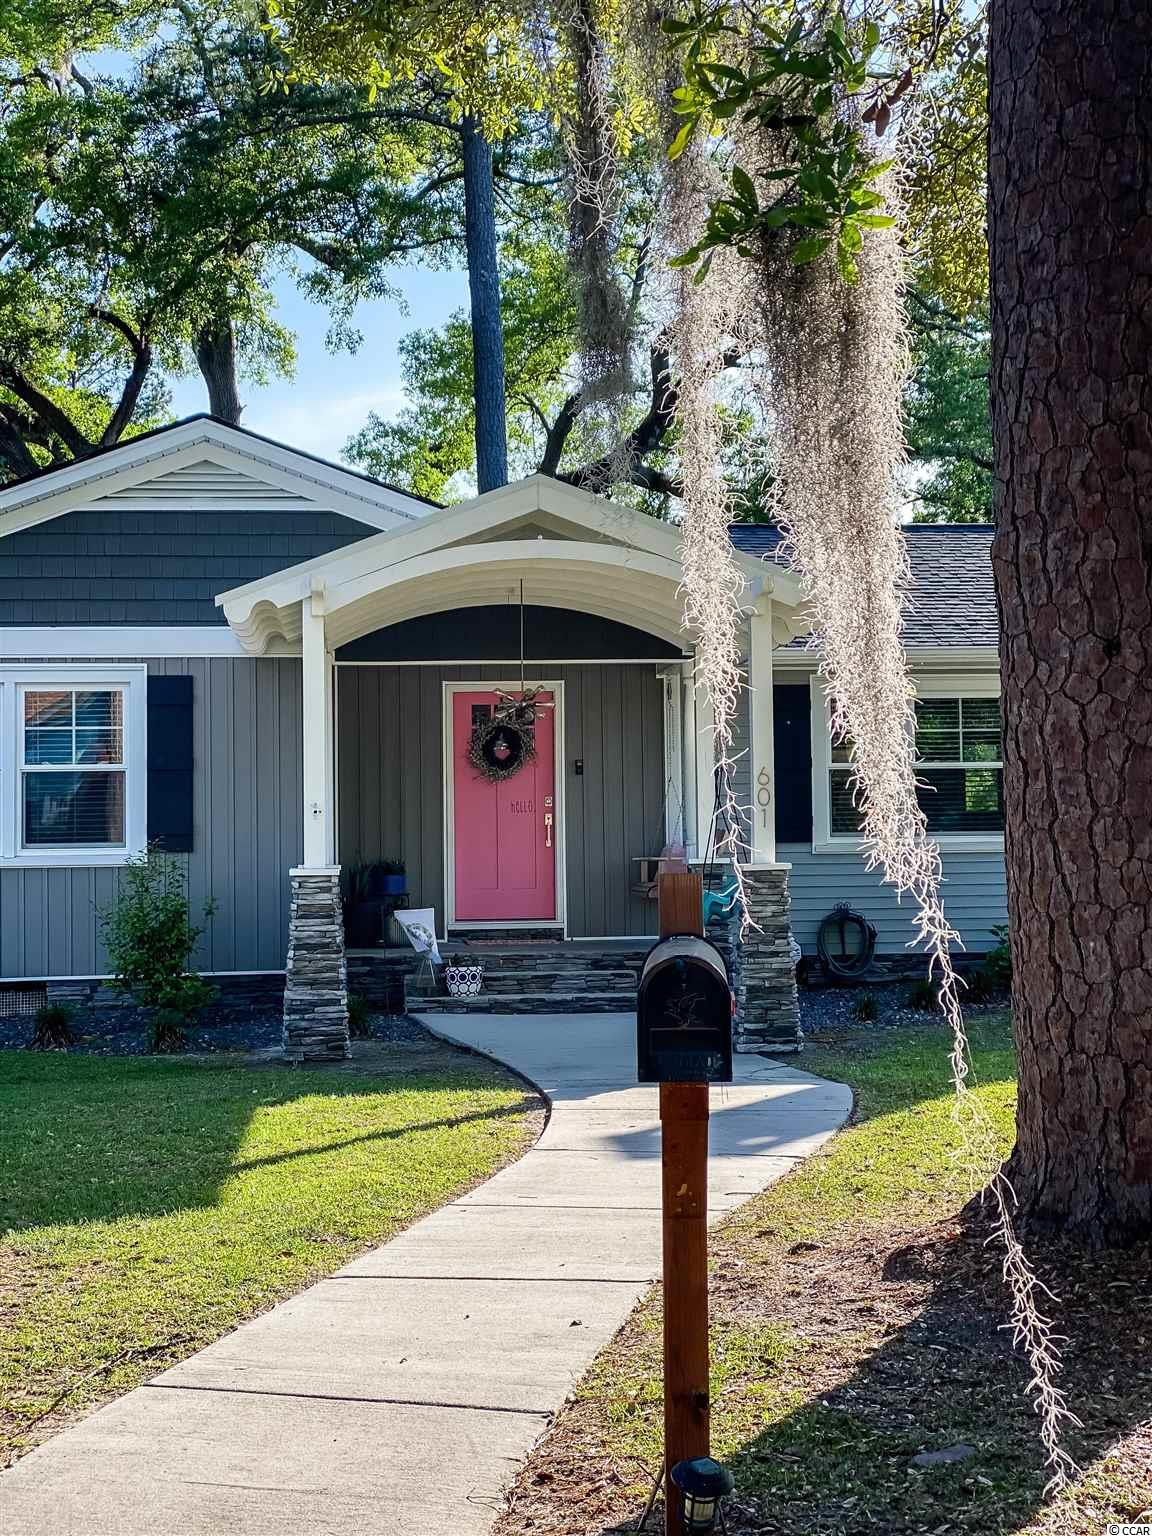 Located on a large corner lot at the intersection of two historic streets.  Your chance to own a recently renovated 3BR, 2BA home in Conway's Historic Downtown has just become available!  This home boasts one of the largest back yards that is fully fenced in and accessible by an iron gate and French doors off the kitchen.  A large deck was built within the past year and is ready for entertaining and relaxation.  The inside is a blend of beautiful old character and updated renovations.  From original hardwoods, to built-in's framing a working fireplace, to thick wooden doors, vintage tiles, ceramic tub and brand new closet organizer systems throughout.  A perfect blend of modern and vintage touches make this home a perfect nest for you and your family!  This home is located a half a mile from the Conway Riverwalk, where you can enjoy much of the Downtown charm that Conway has to offer.  A hidden gem that is within walking distance of Collins Park, Conway Library and many restaurants and boutiques.  *Please note that the current owners chose to have their laundry room outside but the linen closet in the hallway is wired for a smaller stacked washer and dryer unit**  All measurements are approximate and should be verified by buyers.